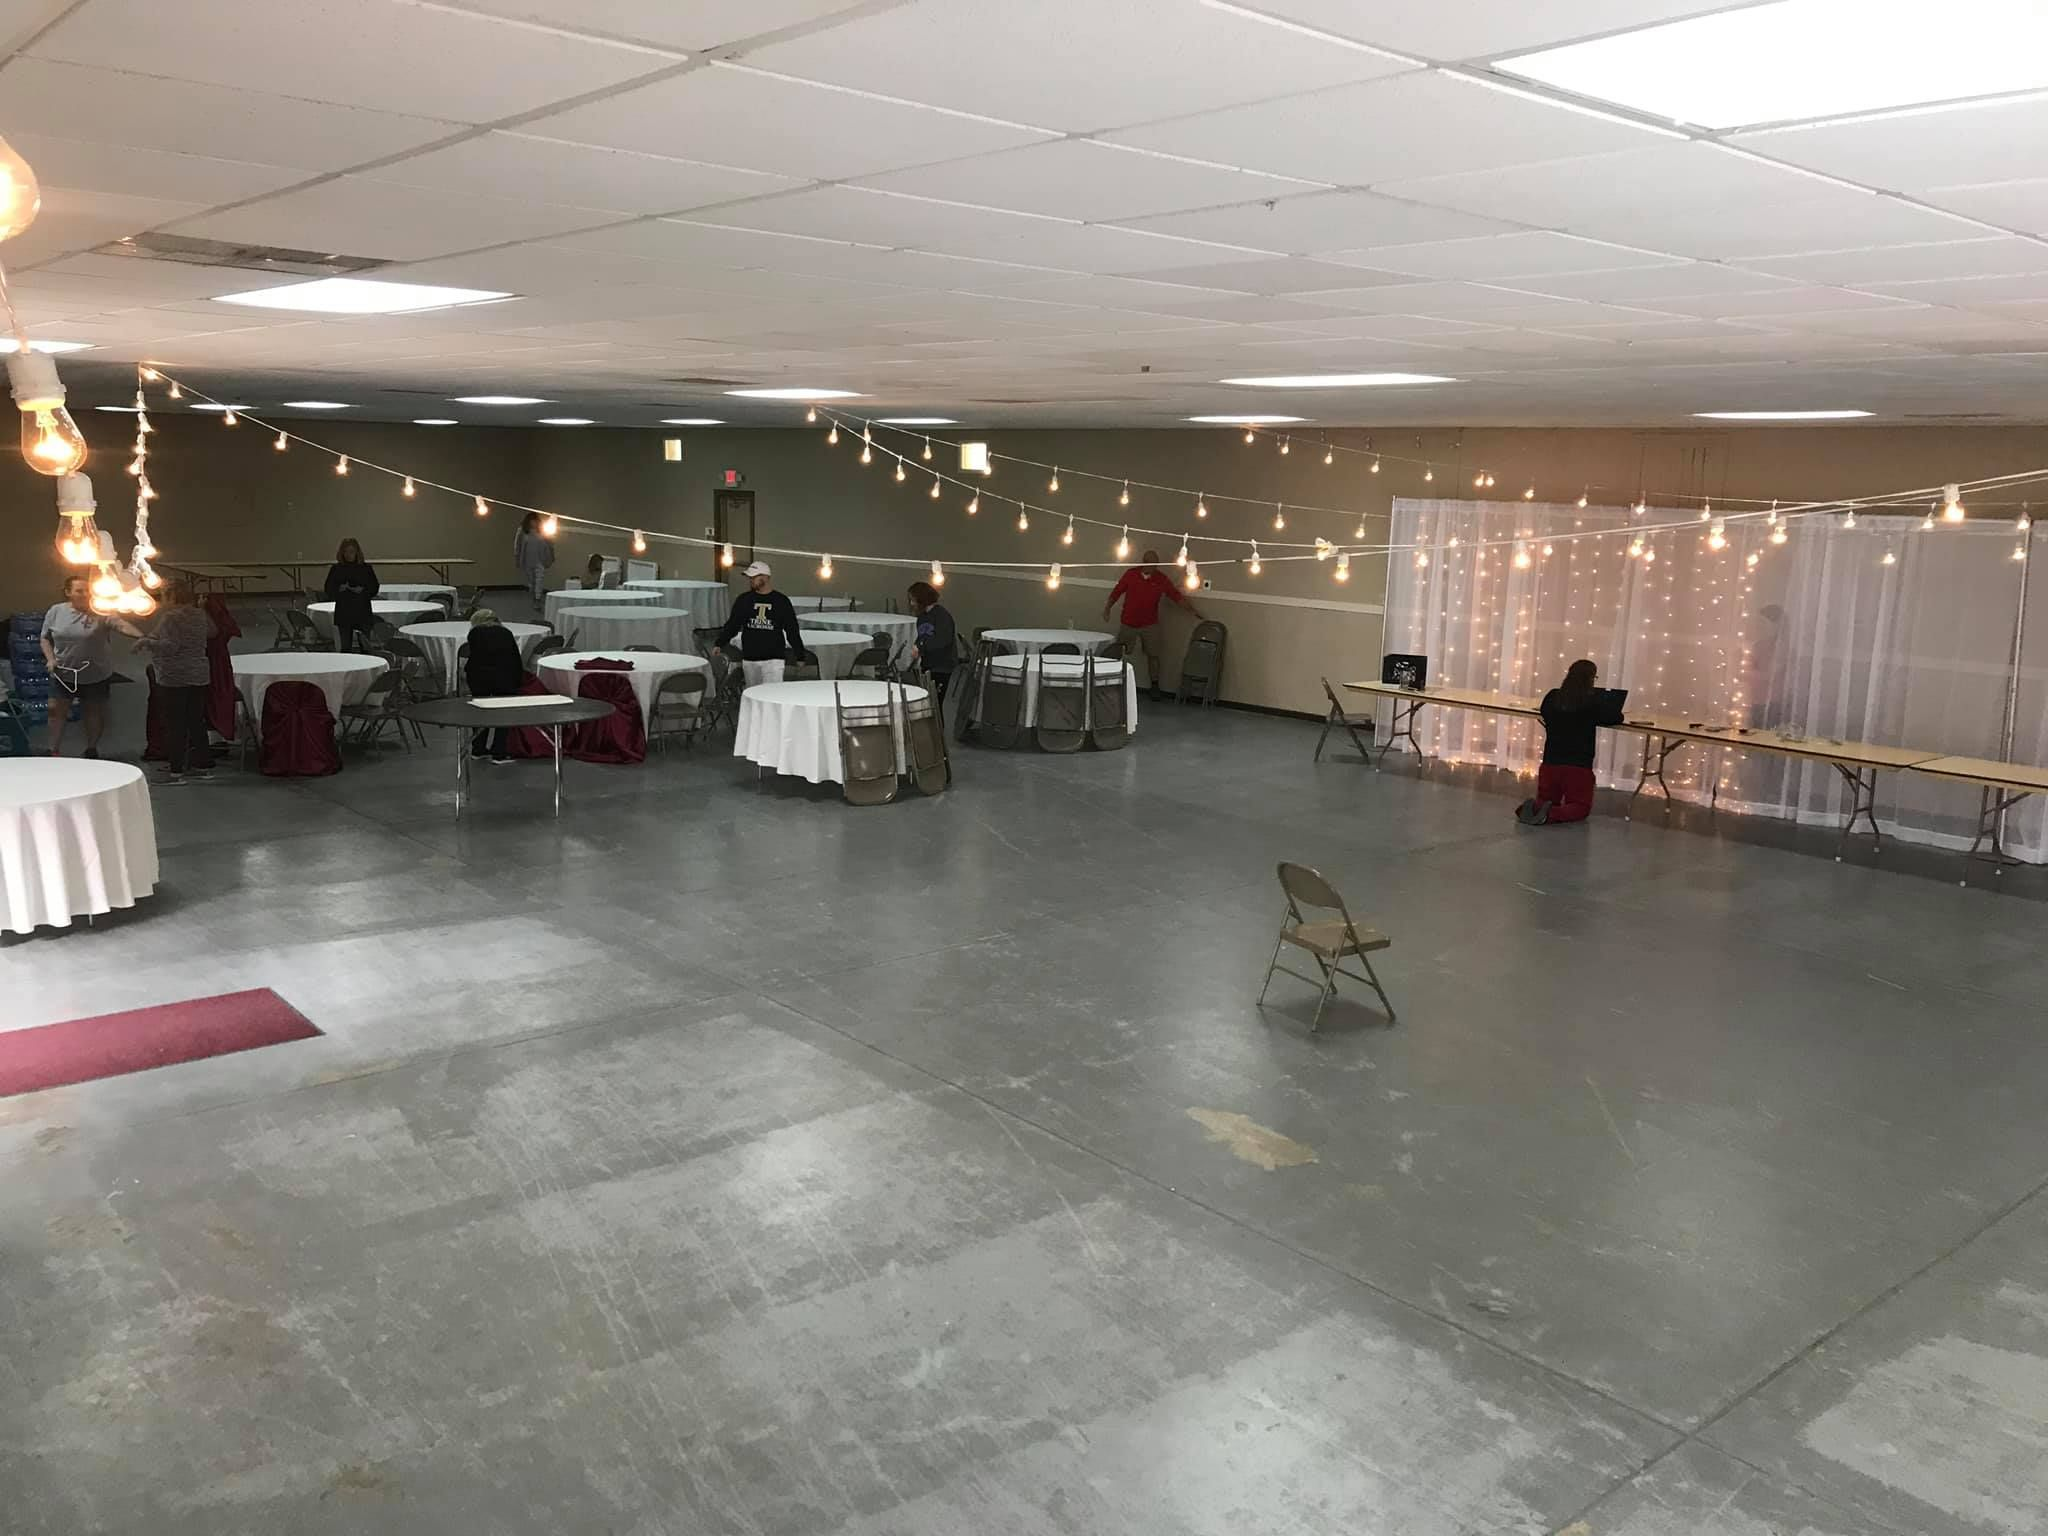 middaugh hall/ market lights in 2020 Ceiling treatments